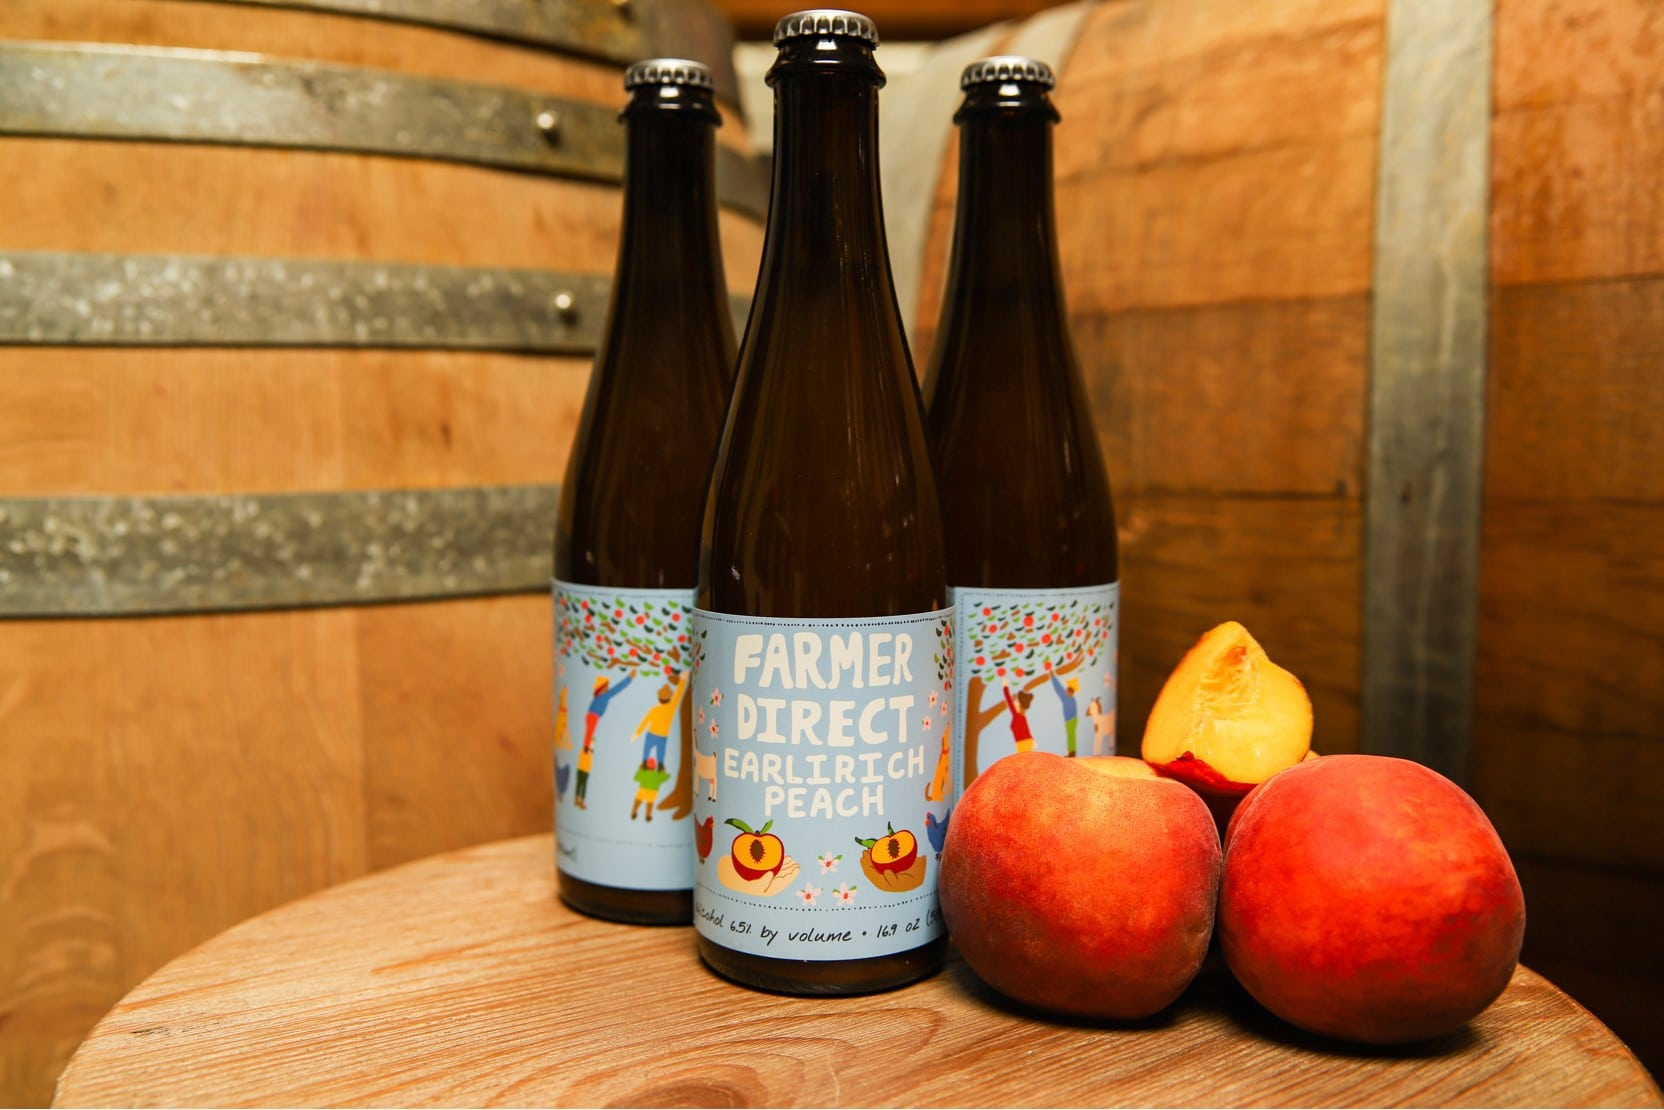 Farmer Direct: Earlirich Peach Bottles ~ Sold Out